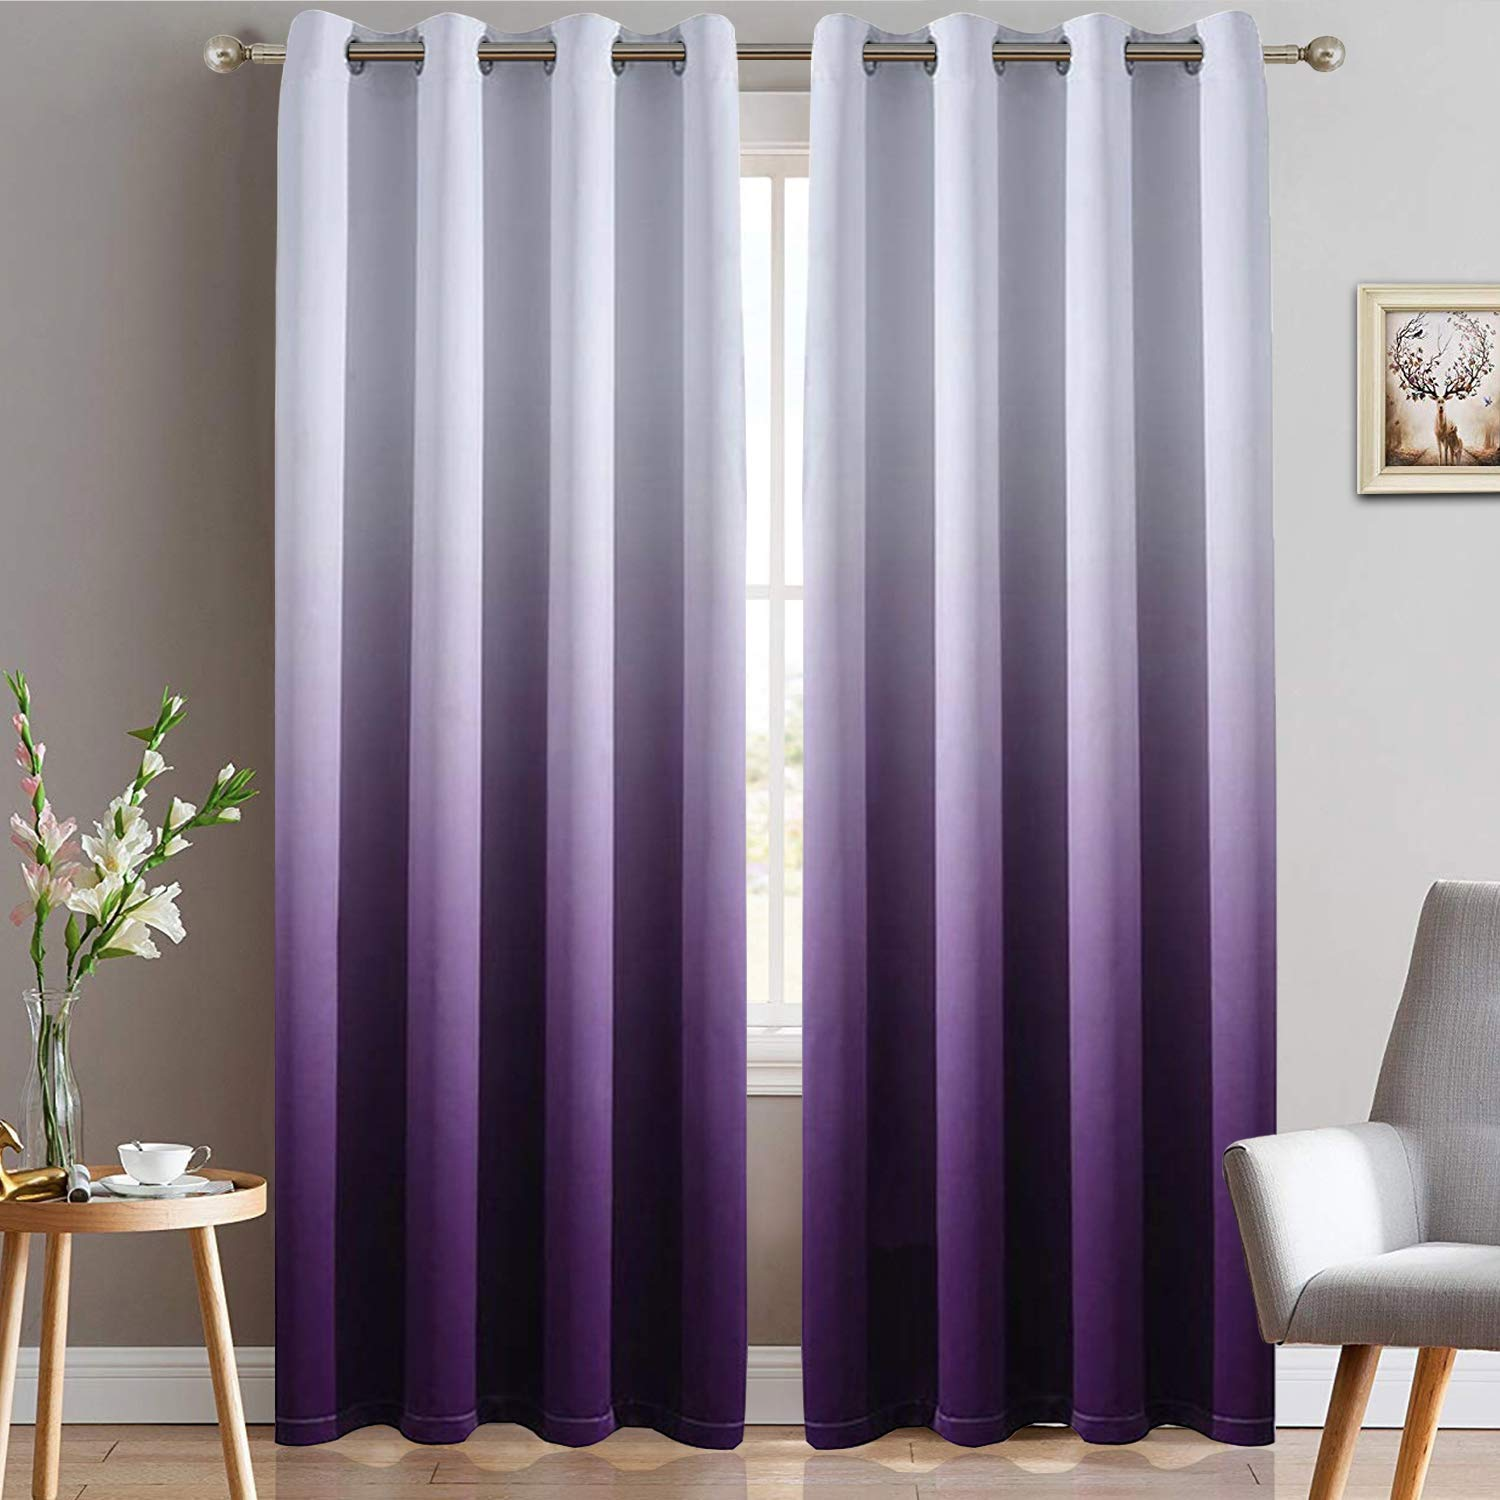 Yakamok Light Blocking Gradient Color Panels Purple Ombre Blackout Curtains Room Darkening Thermal Insulated Grommet Window Drapes for Living Room/Bedroom (Purple, 2 Panels, 52x84 Inch) by Yakamok